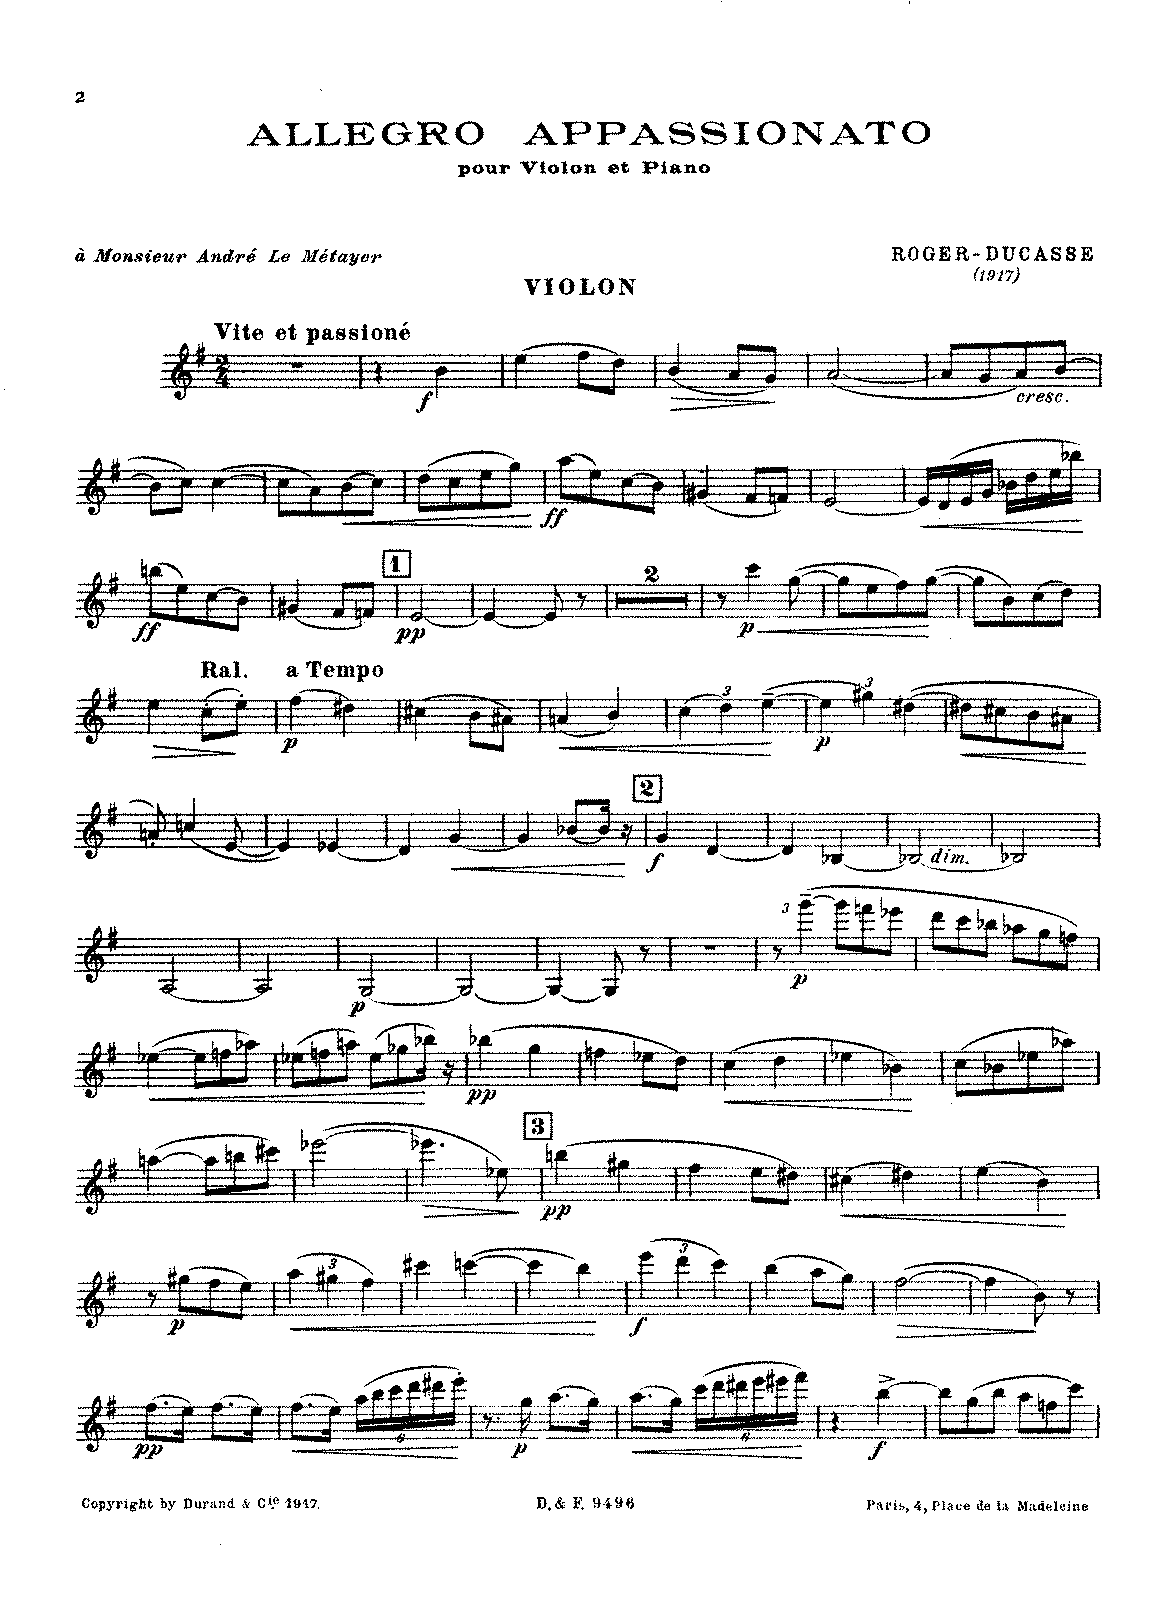 PMLP57057-Roger-Ducasse - Allegro appassionato (violin and piano).pdf